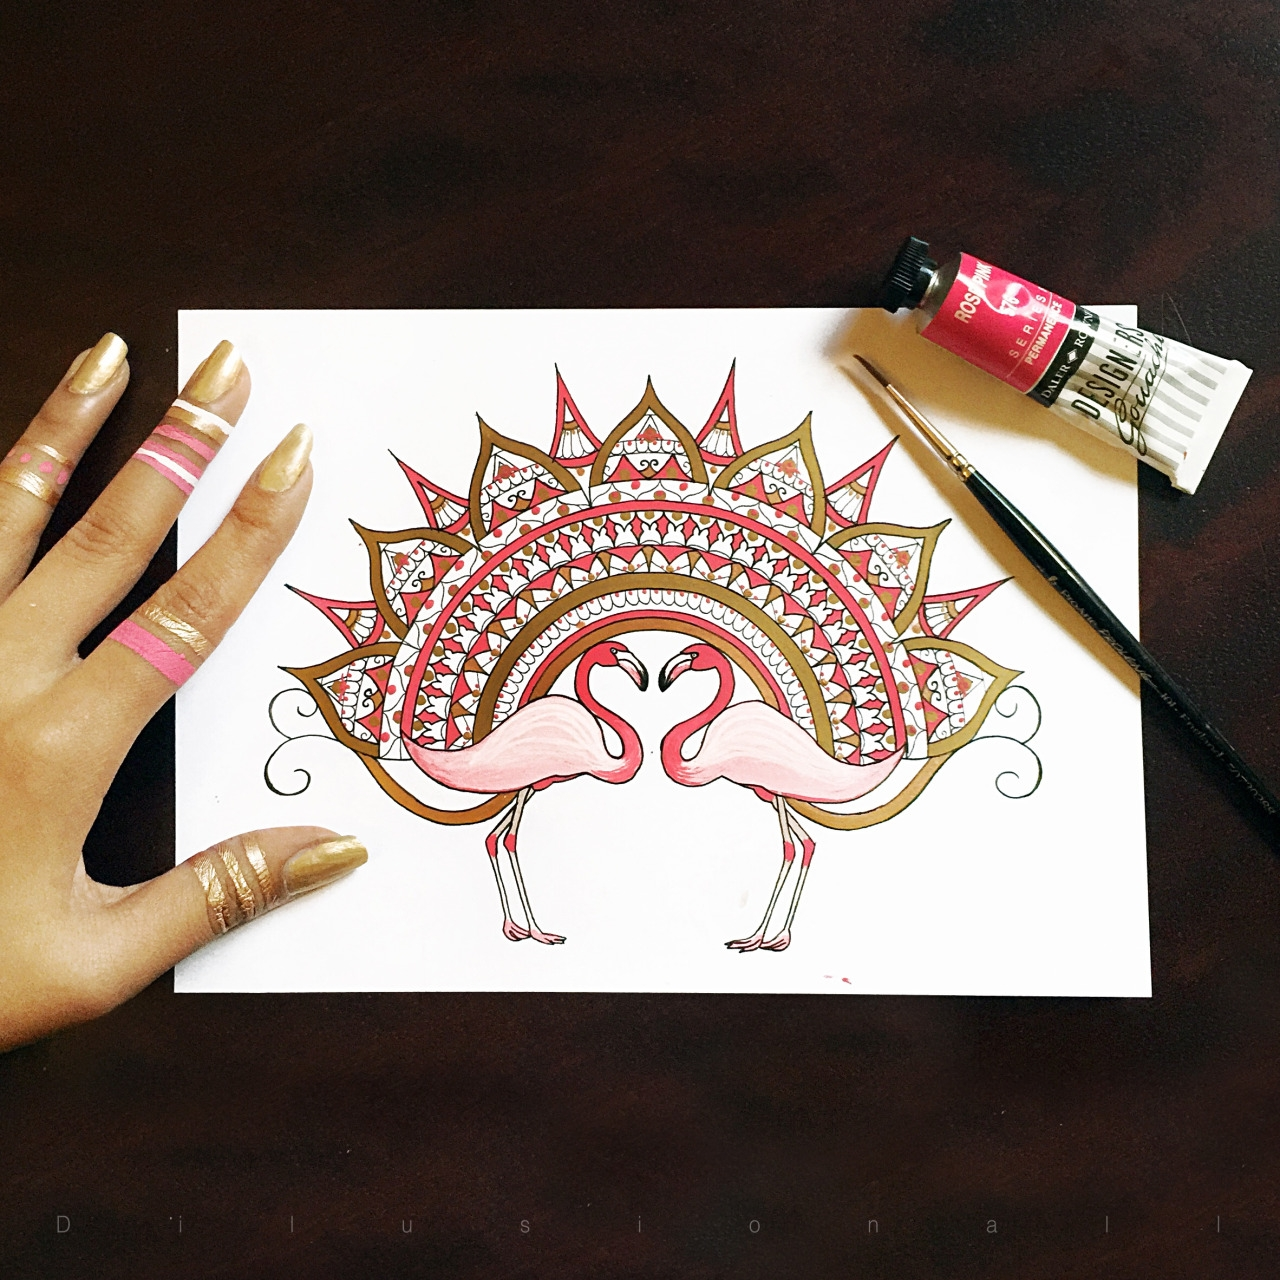 15-Pink-and-Gold-Dilrani-Kauris-Symmetry-and-Style-in-Mandala-and-Mehndi-Drawings-www-designstack-co